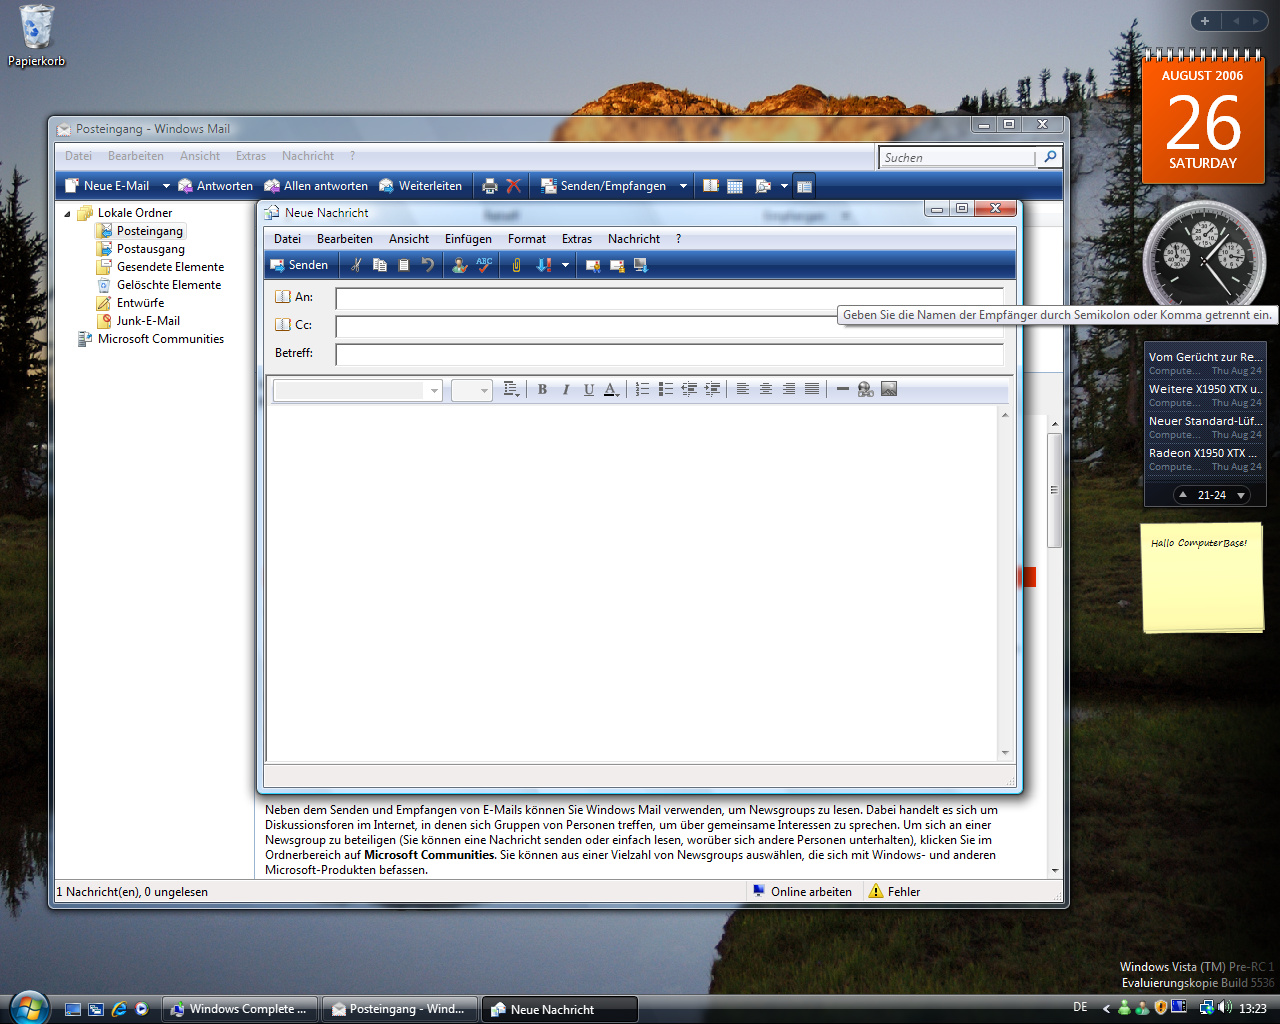 Windows Vista Build 5536 - Mail schreiben